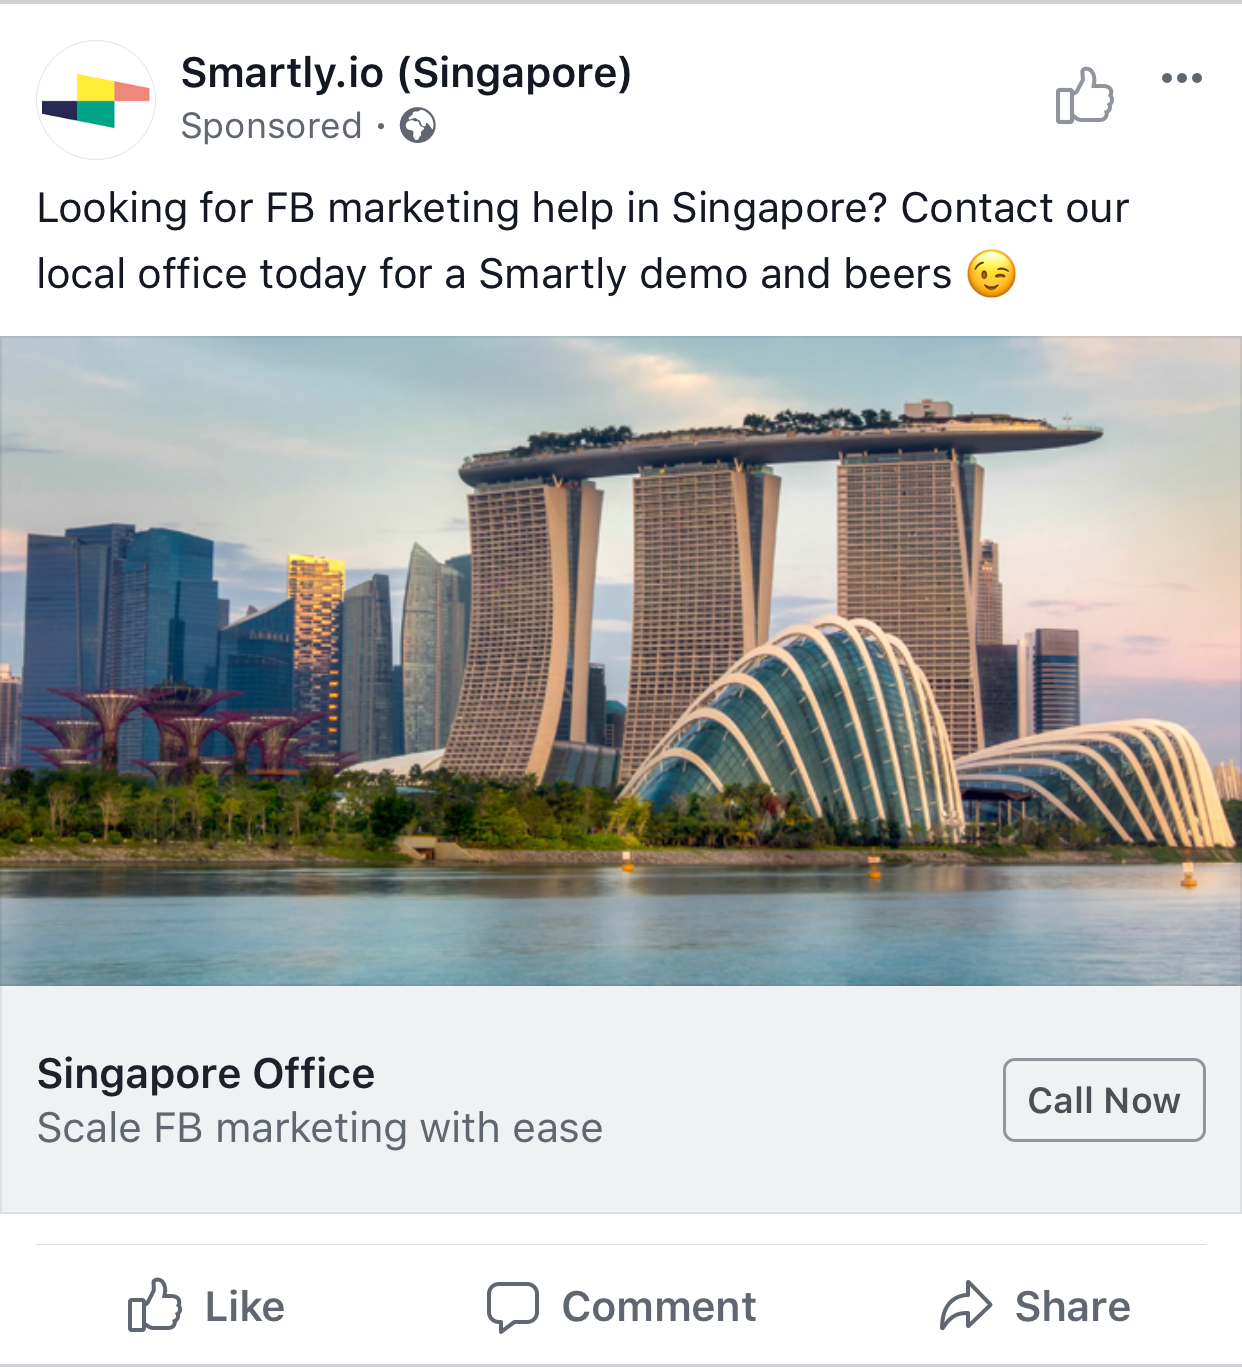 2018-02-15_smartly_singapore_call_now_ad.png